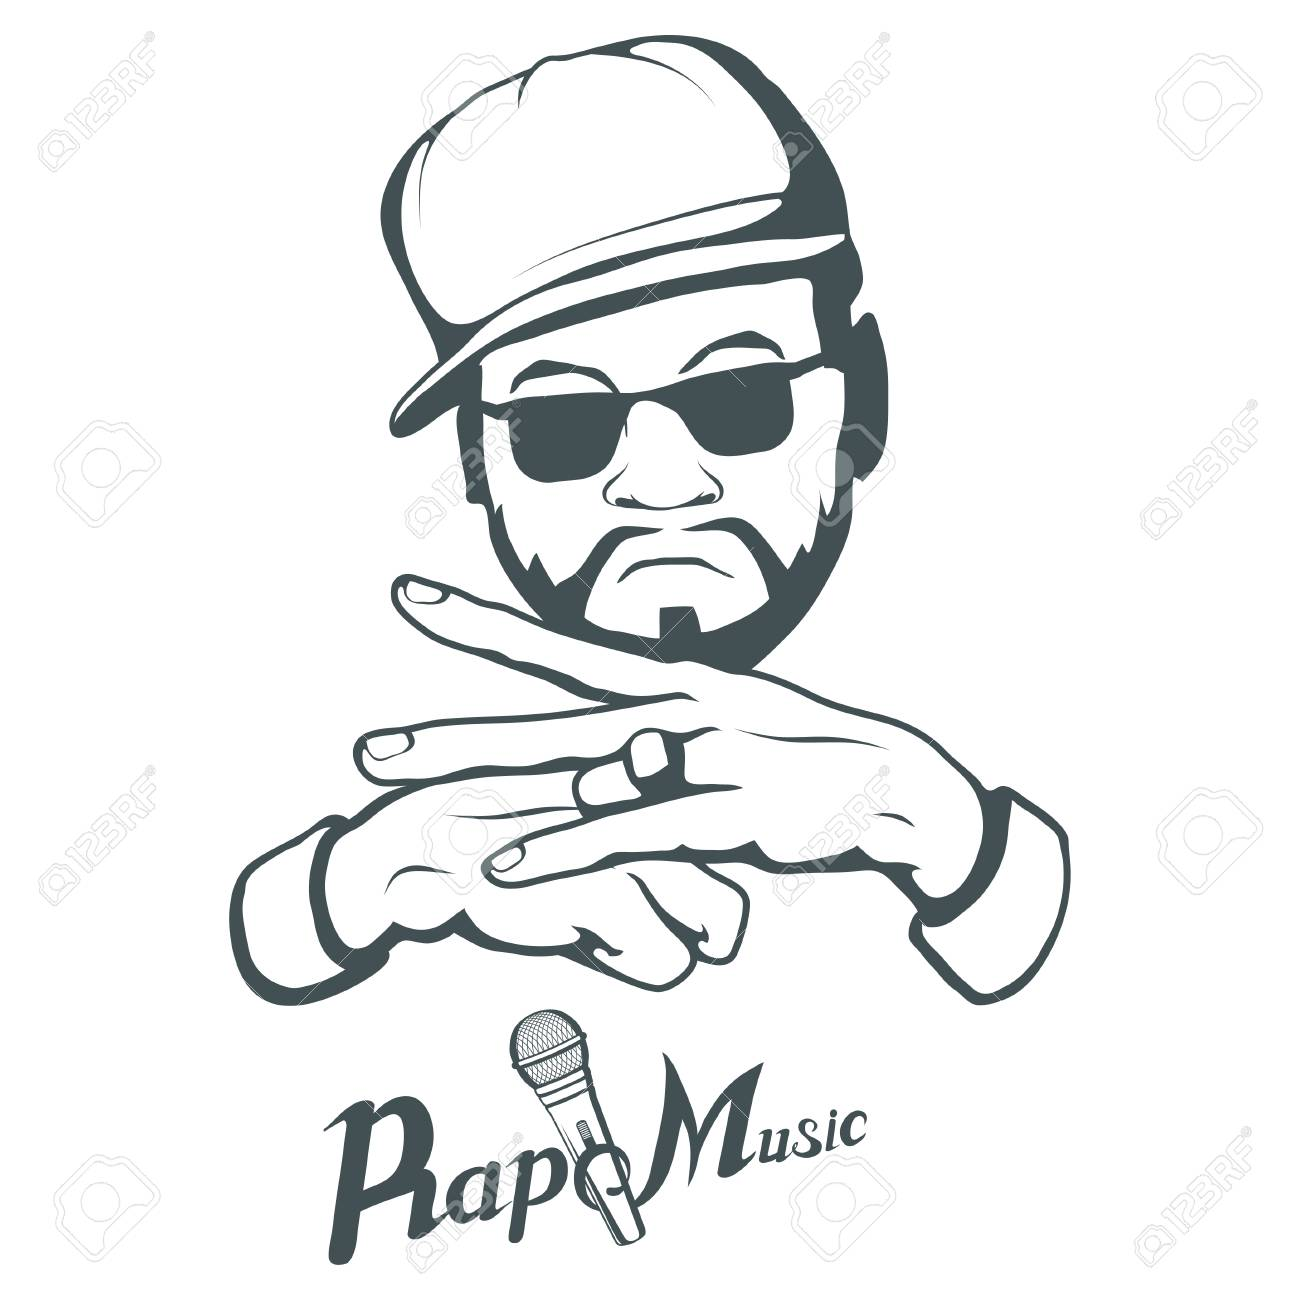 54afed54abf Rap music logo. Rapper skull on white background. Lettering with a  microphone. Vector